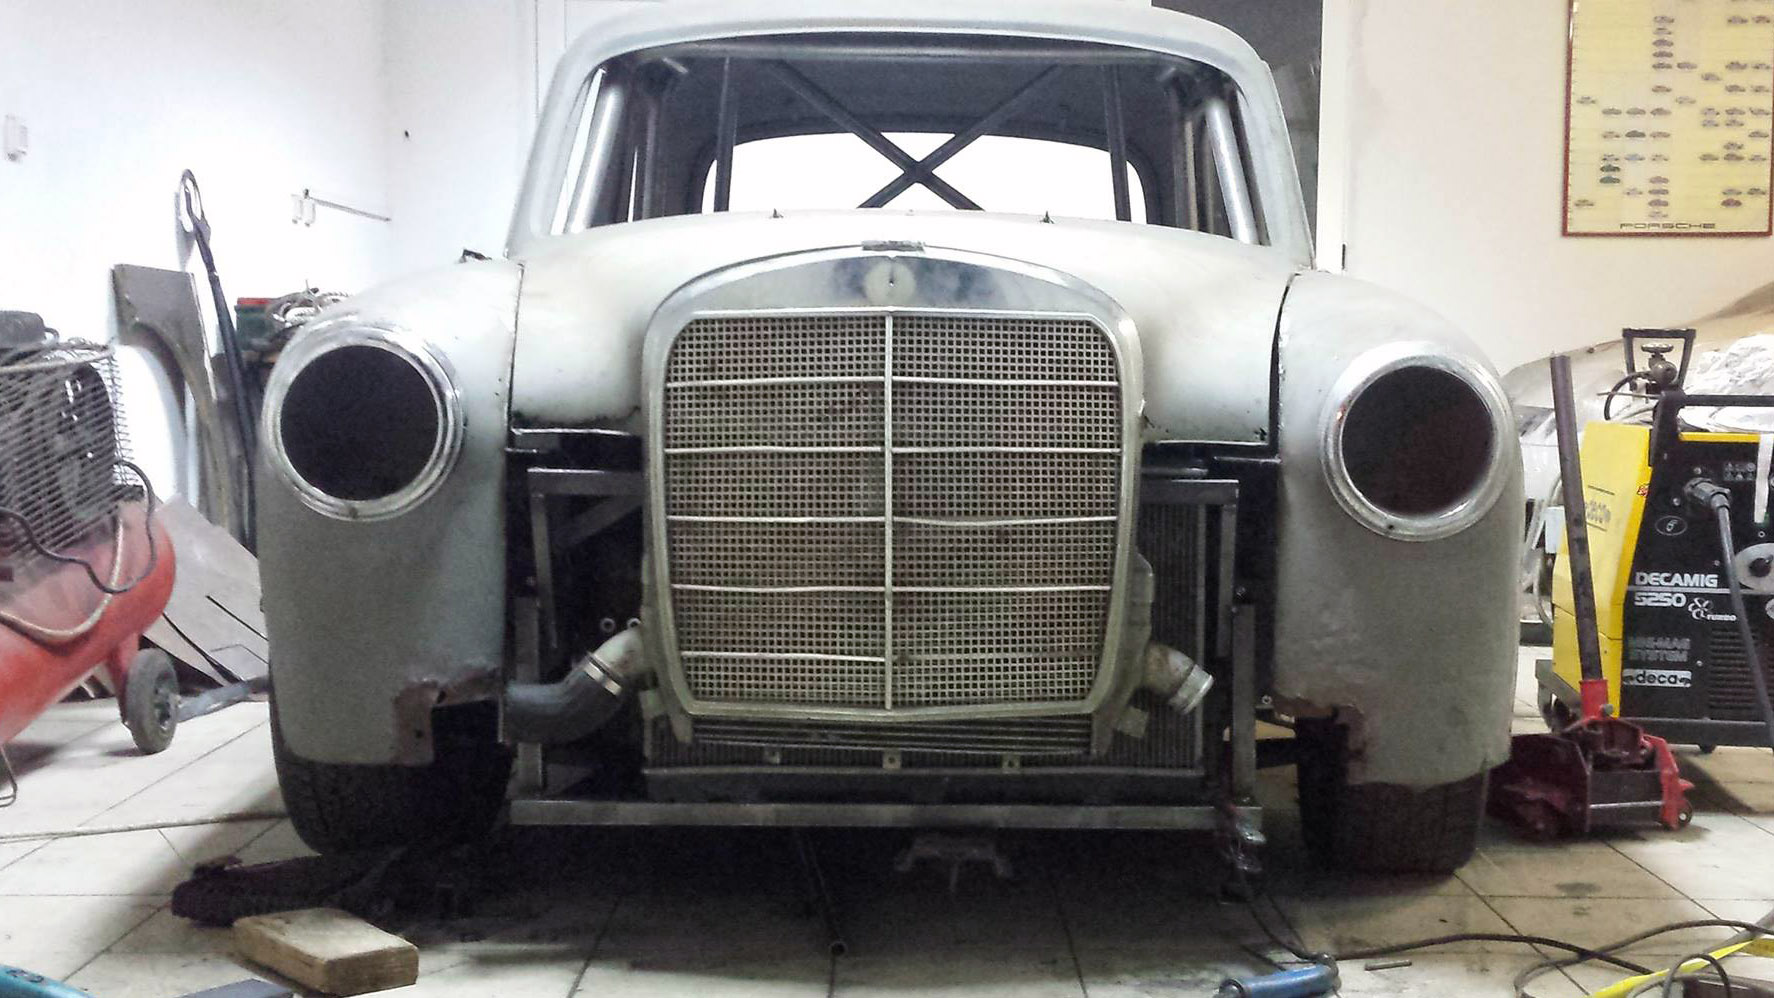 1961 mercedes ponton with an evo powertrain engine swap depot 1961 mercedes ponton with an evo powertrain sciox Images